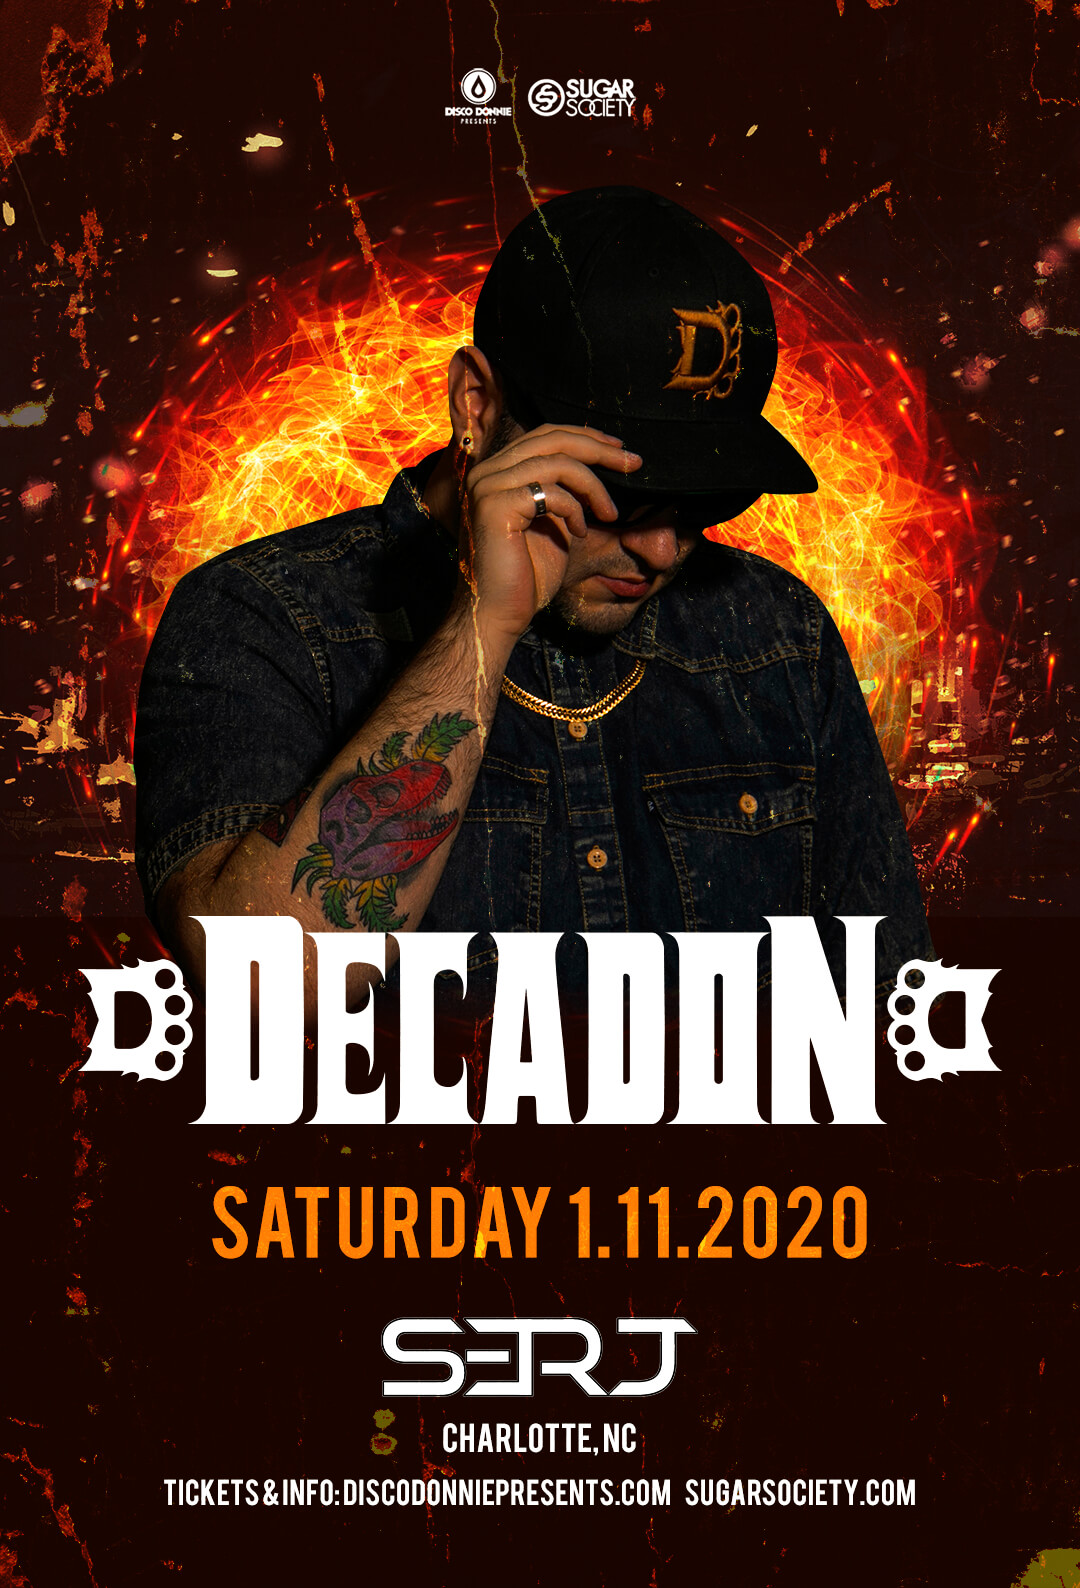 Decadon in Charlotte